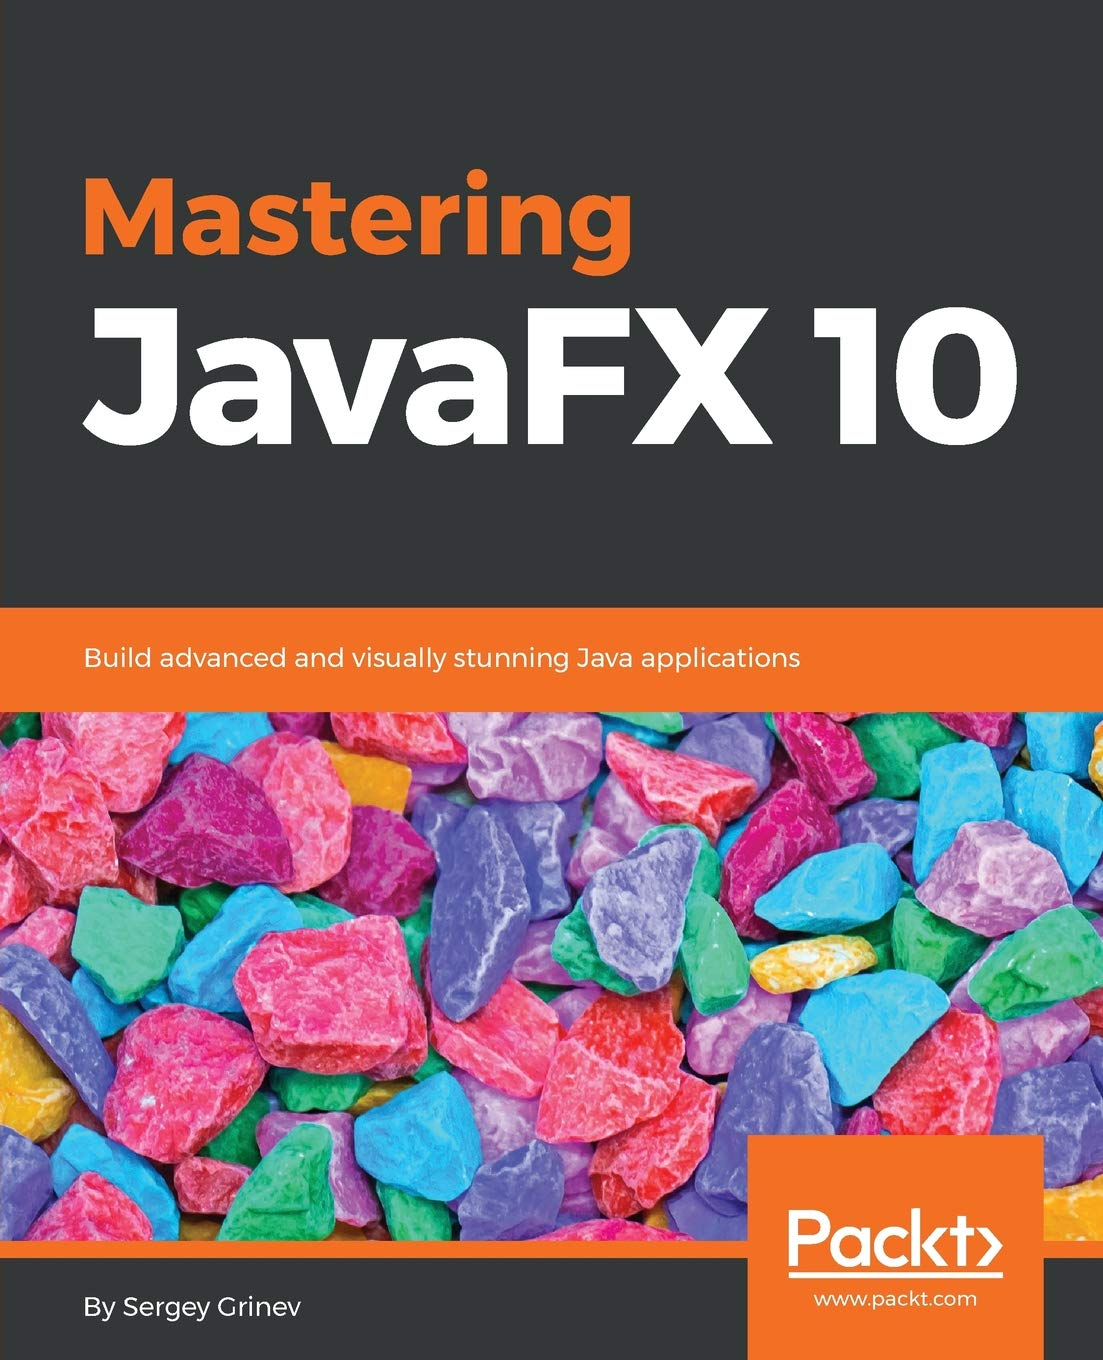 Mastering JavaFX 10: Build advanced and visually stunning